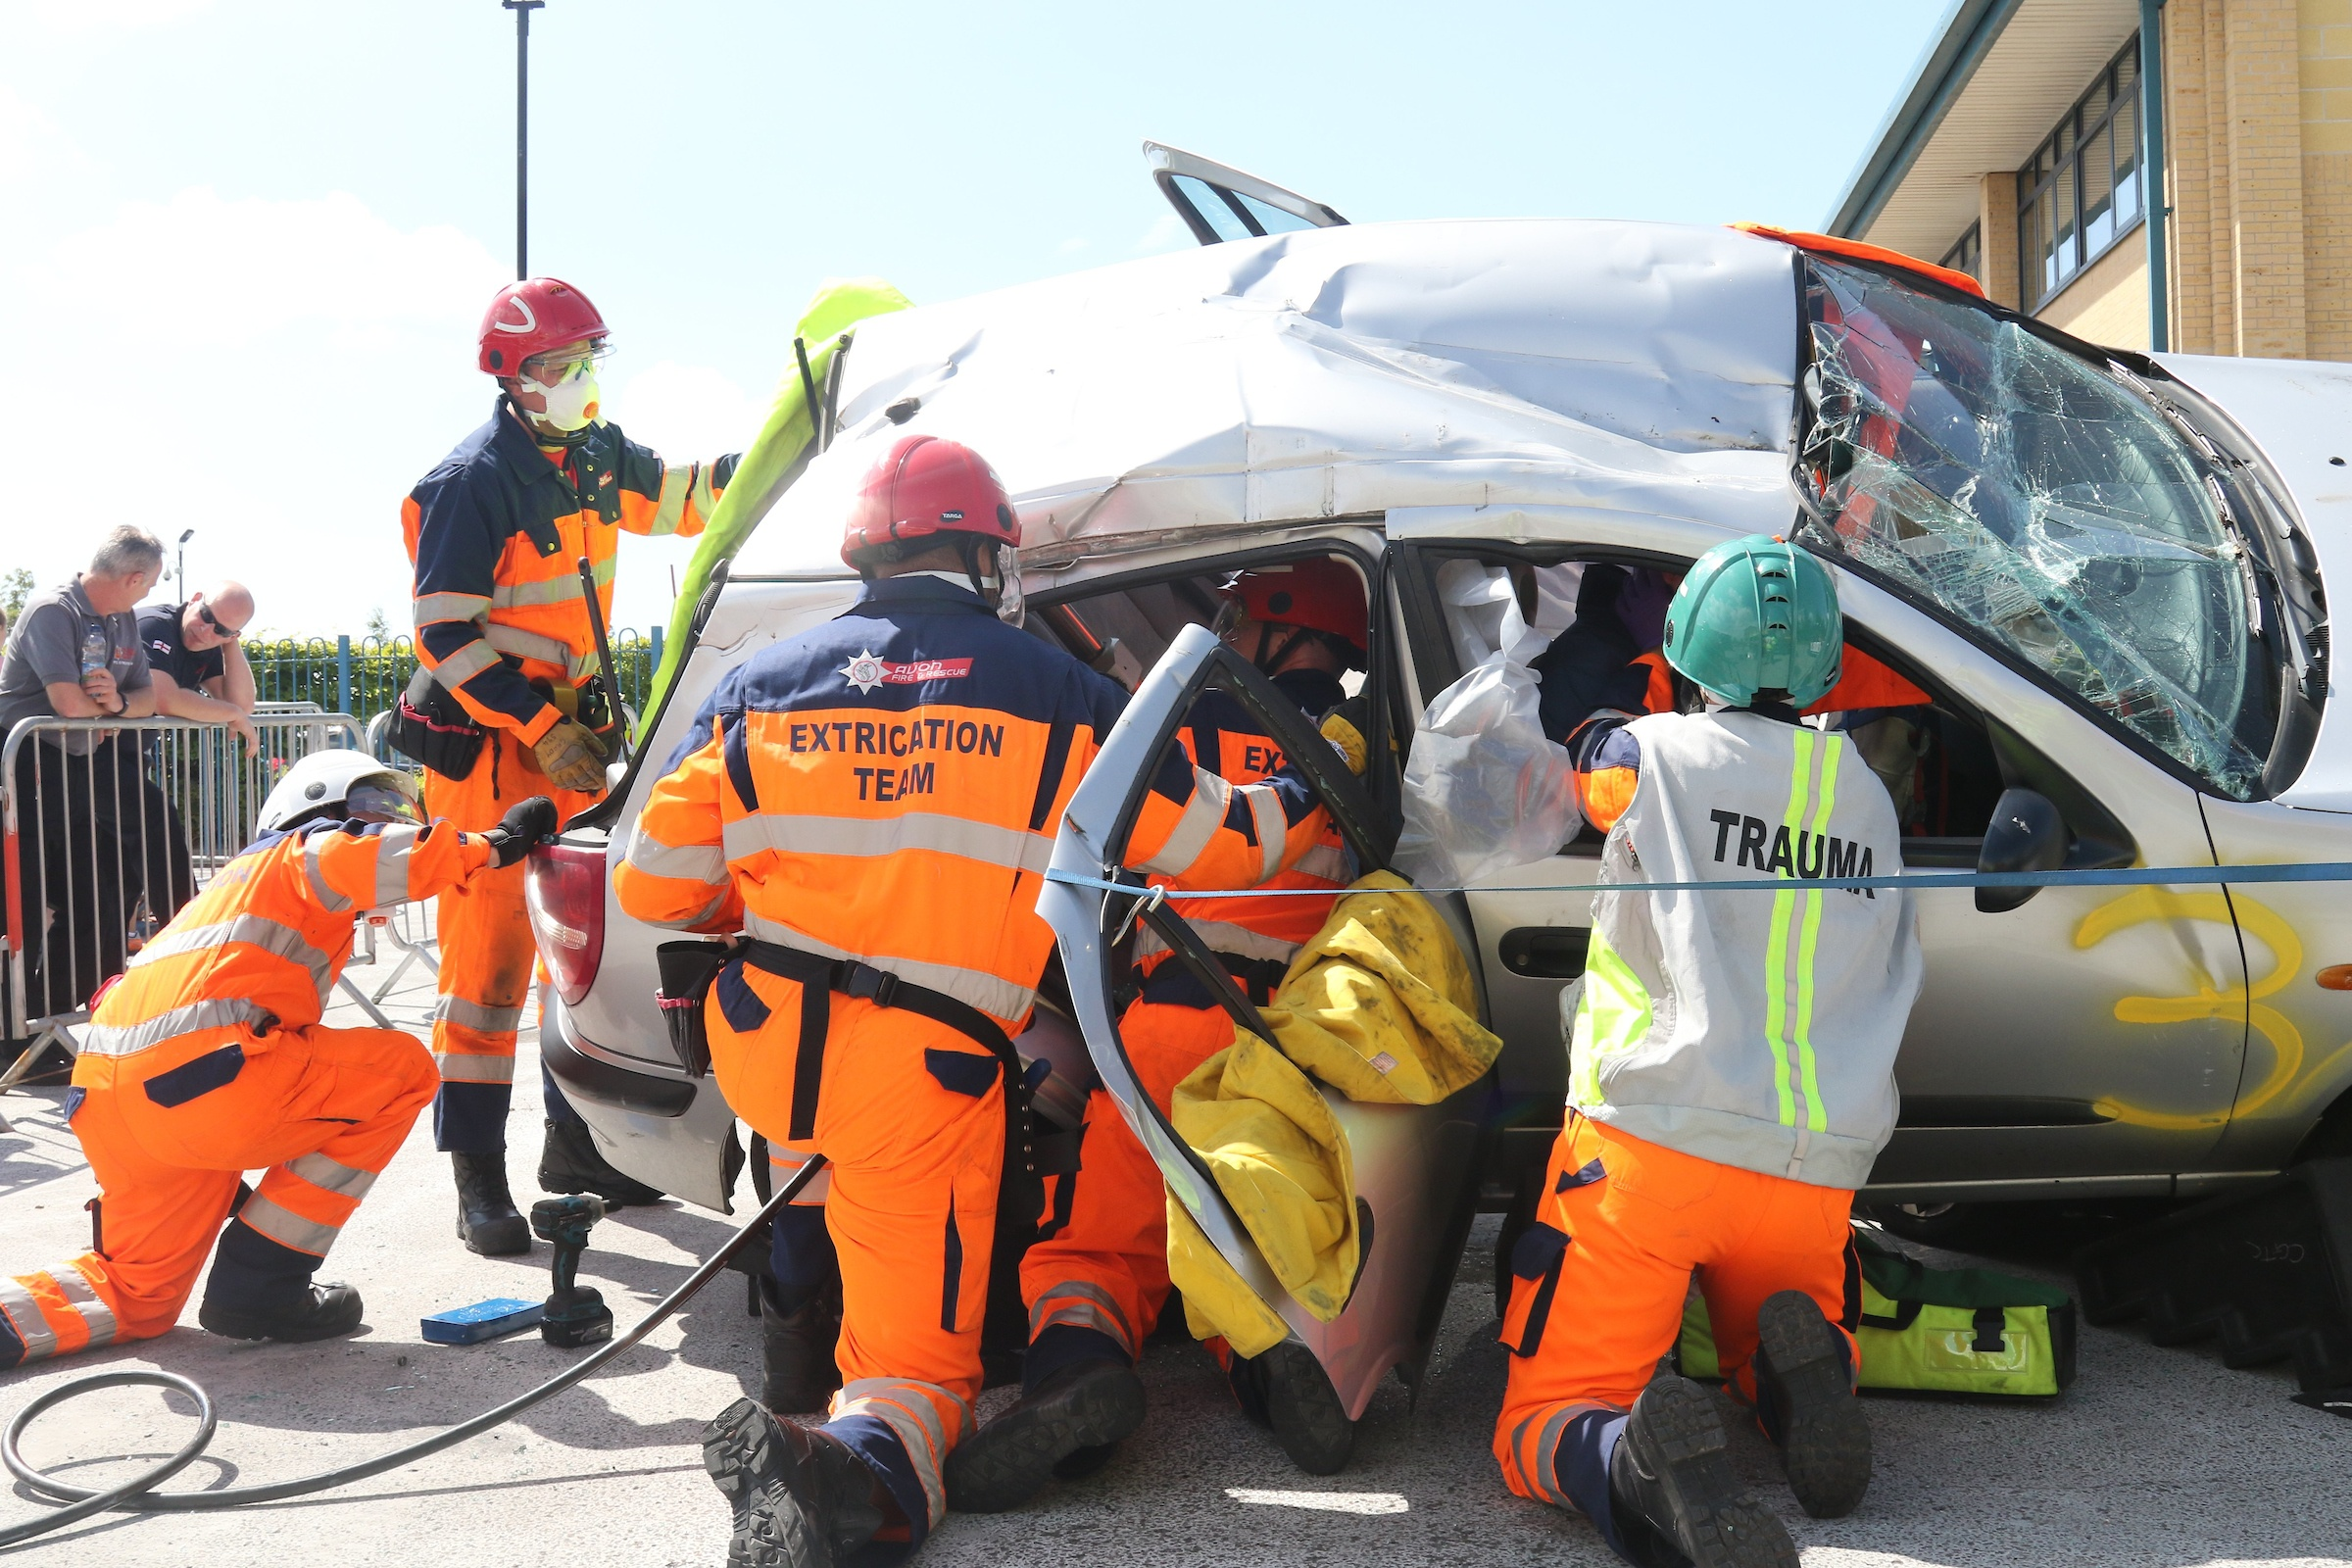 Vehicle on its side with smashed windscreen surrounded by trauma and extrication team wearing full orange high viz and helmets. The teams are working to get people out of the car (this is a simulation as part of the UKRO challenge)